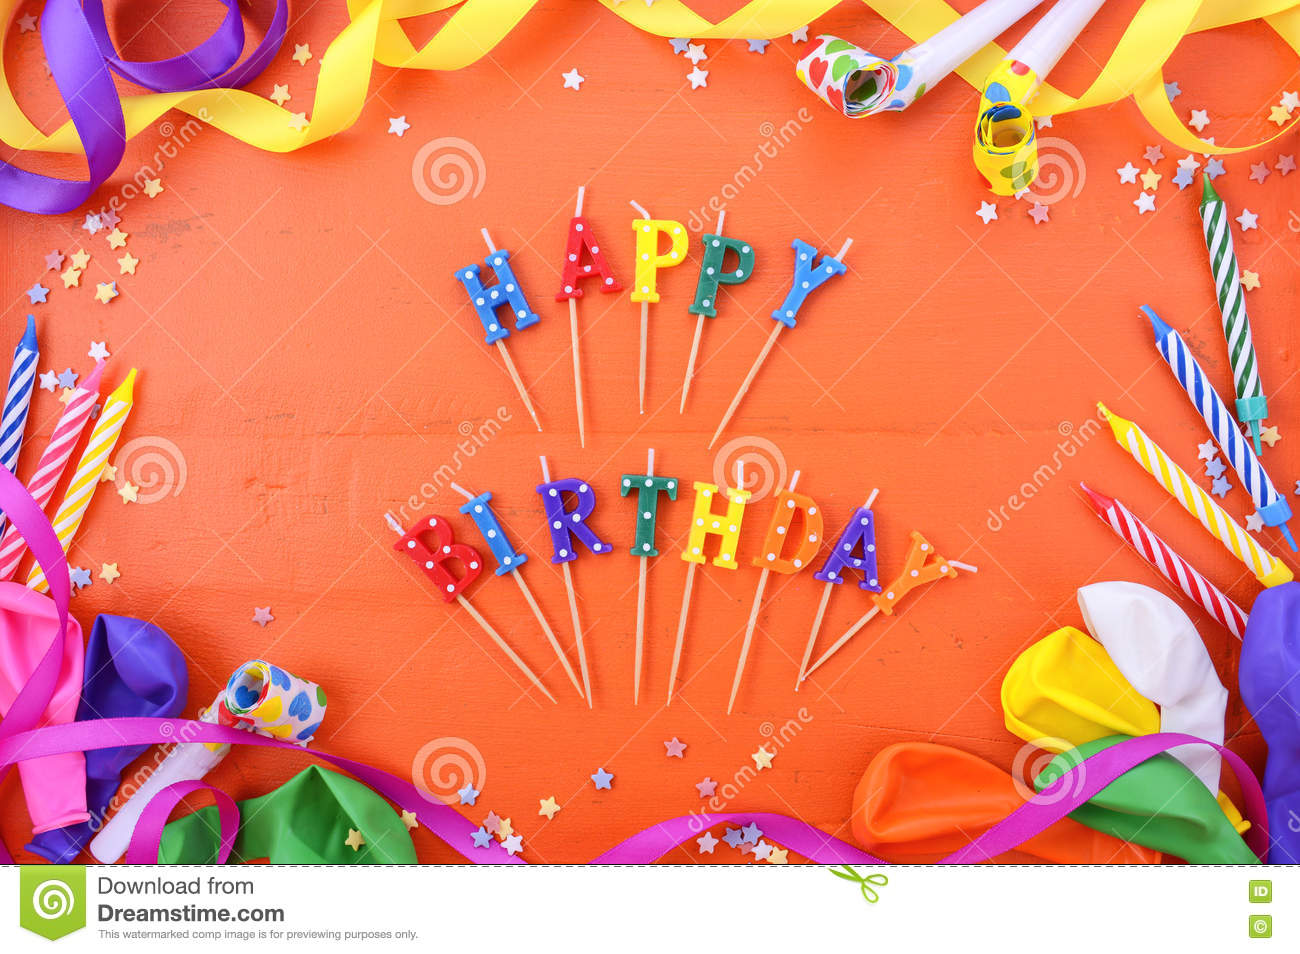 Happy birthday party decorations background stock photo for Background decoration for birthday party